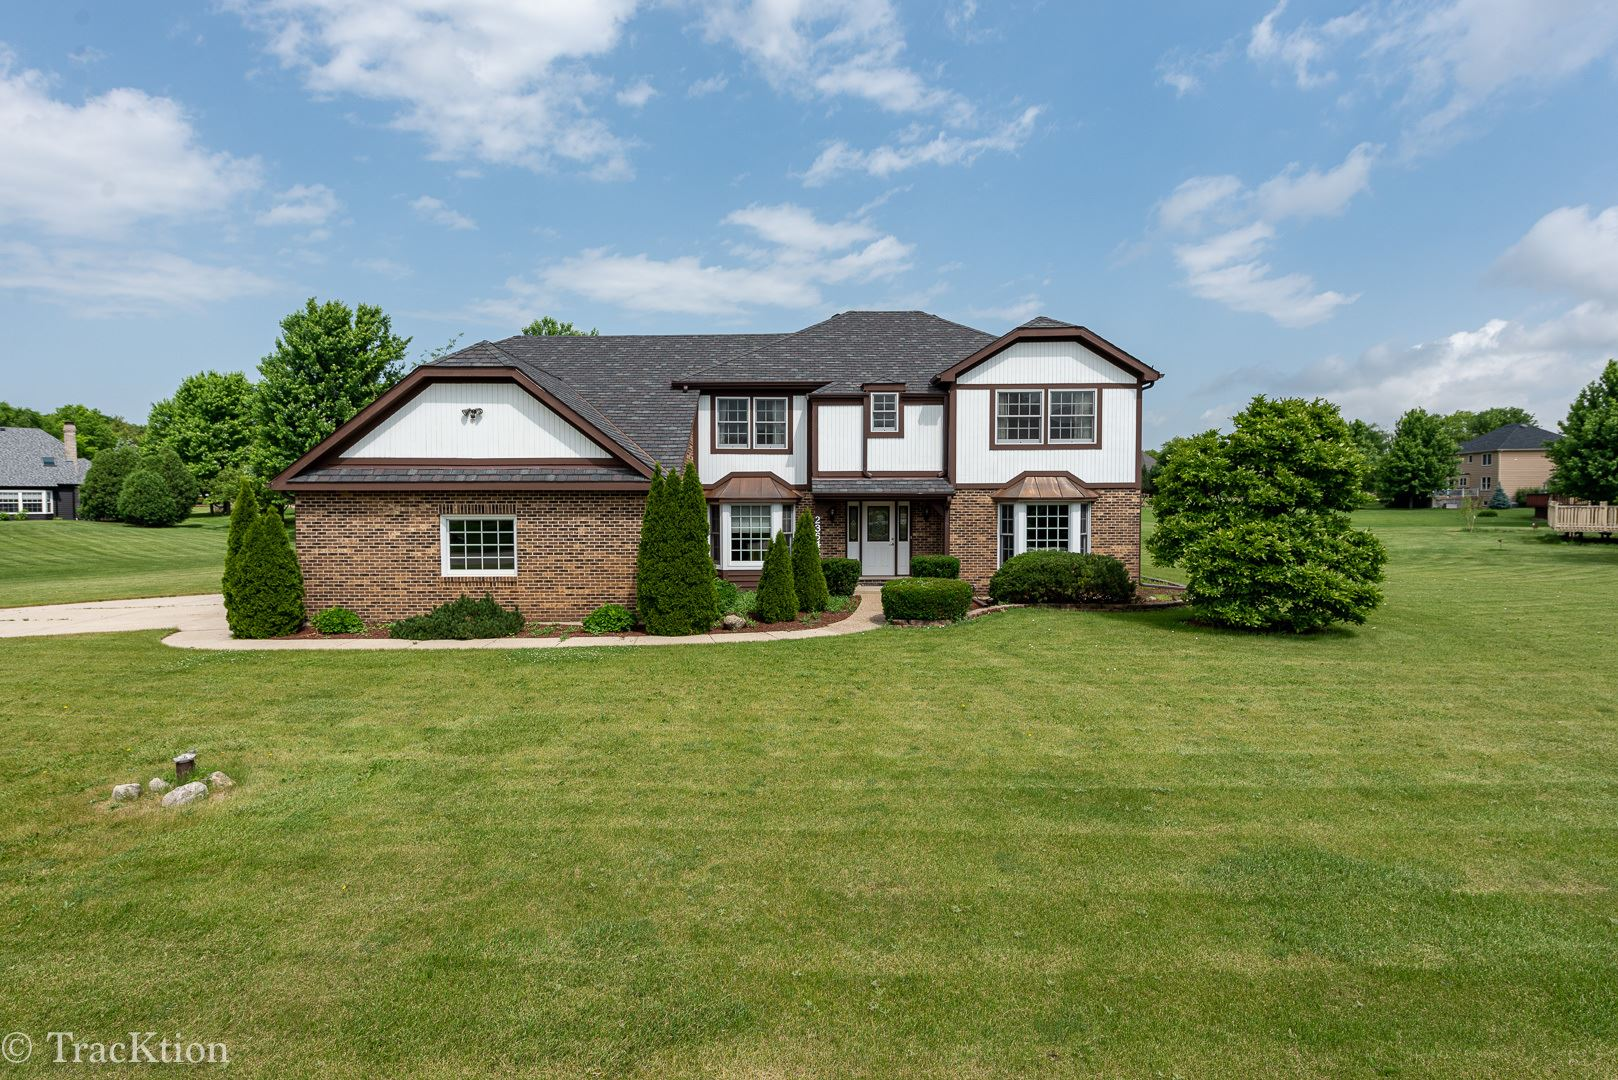 23648 W Royal Worlington Drive, Naperville, IL 60564 - #: 10744397